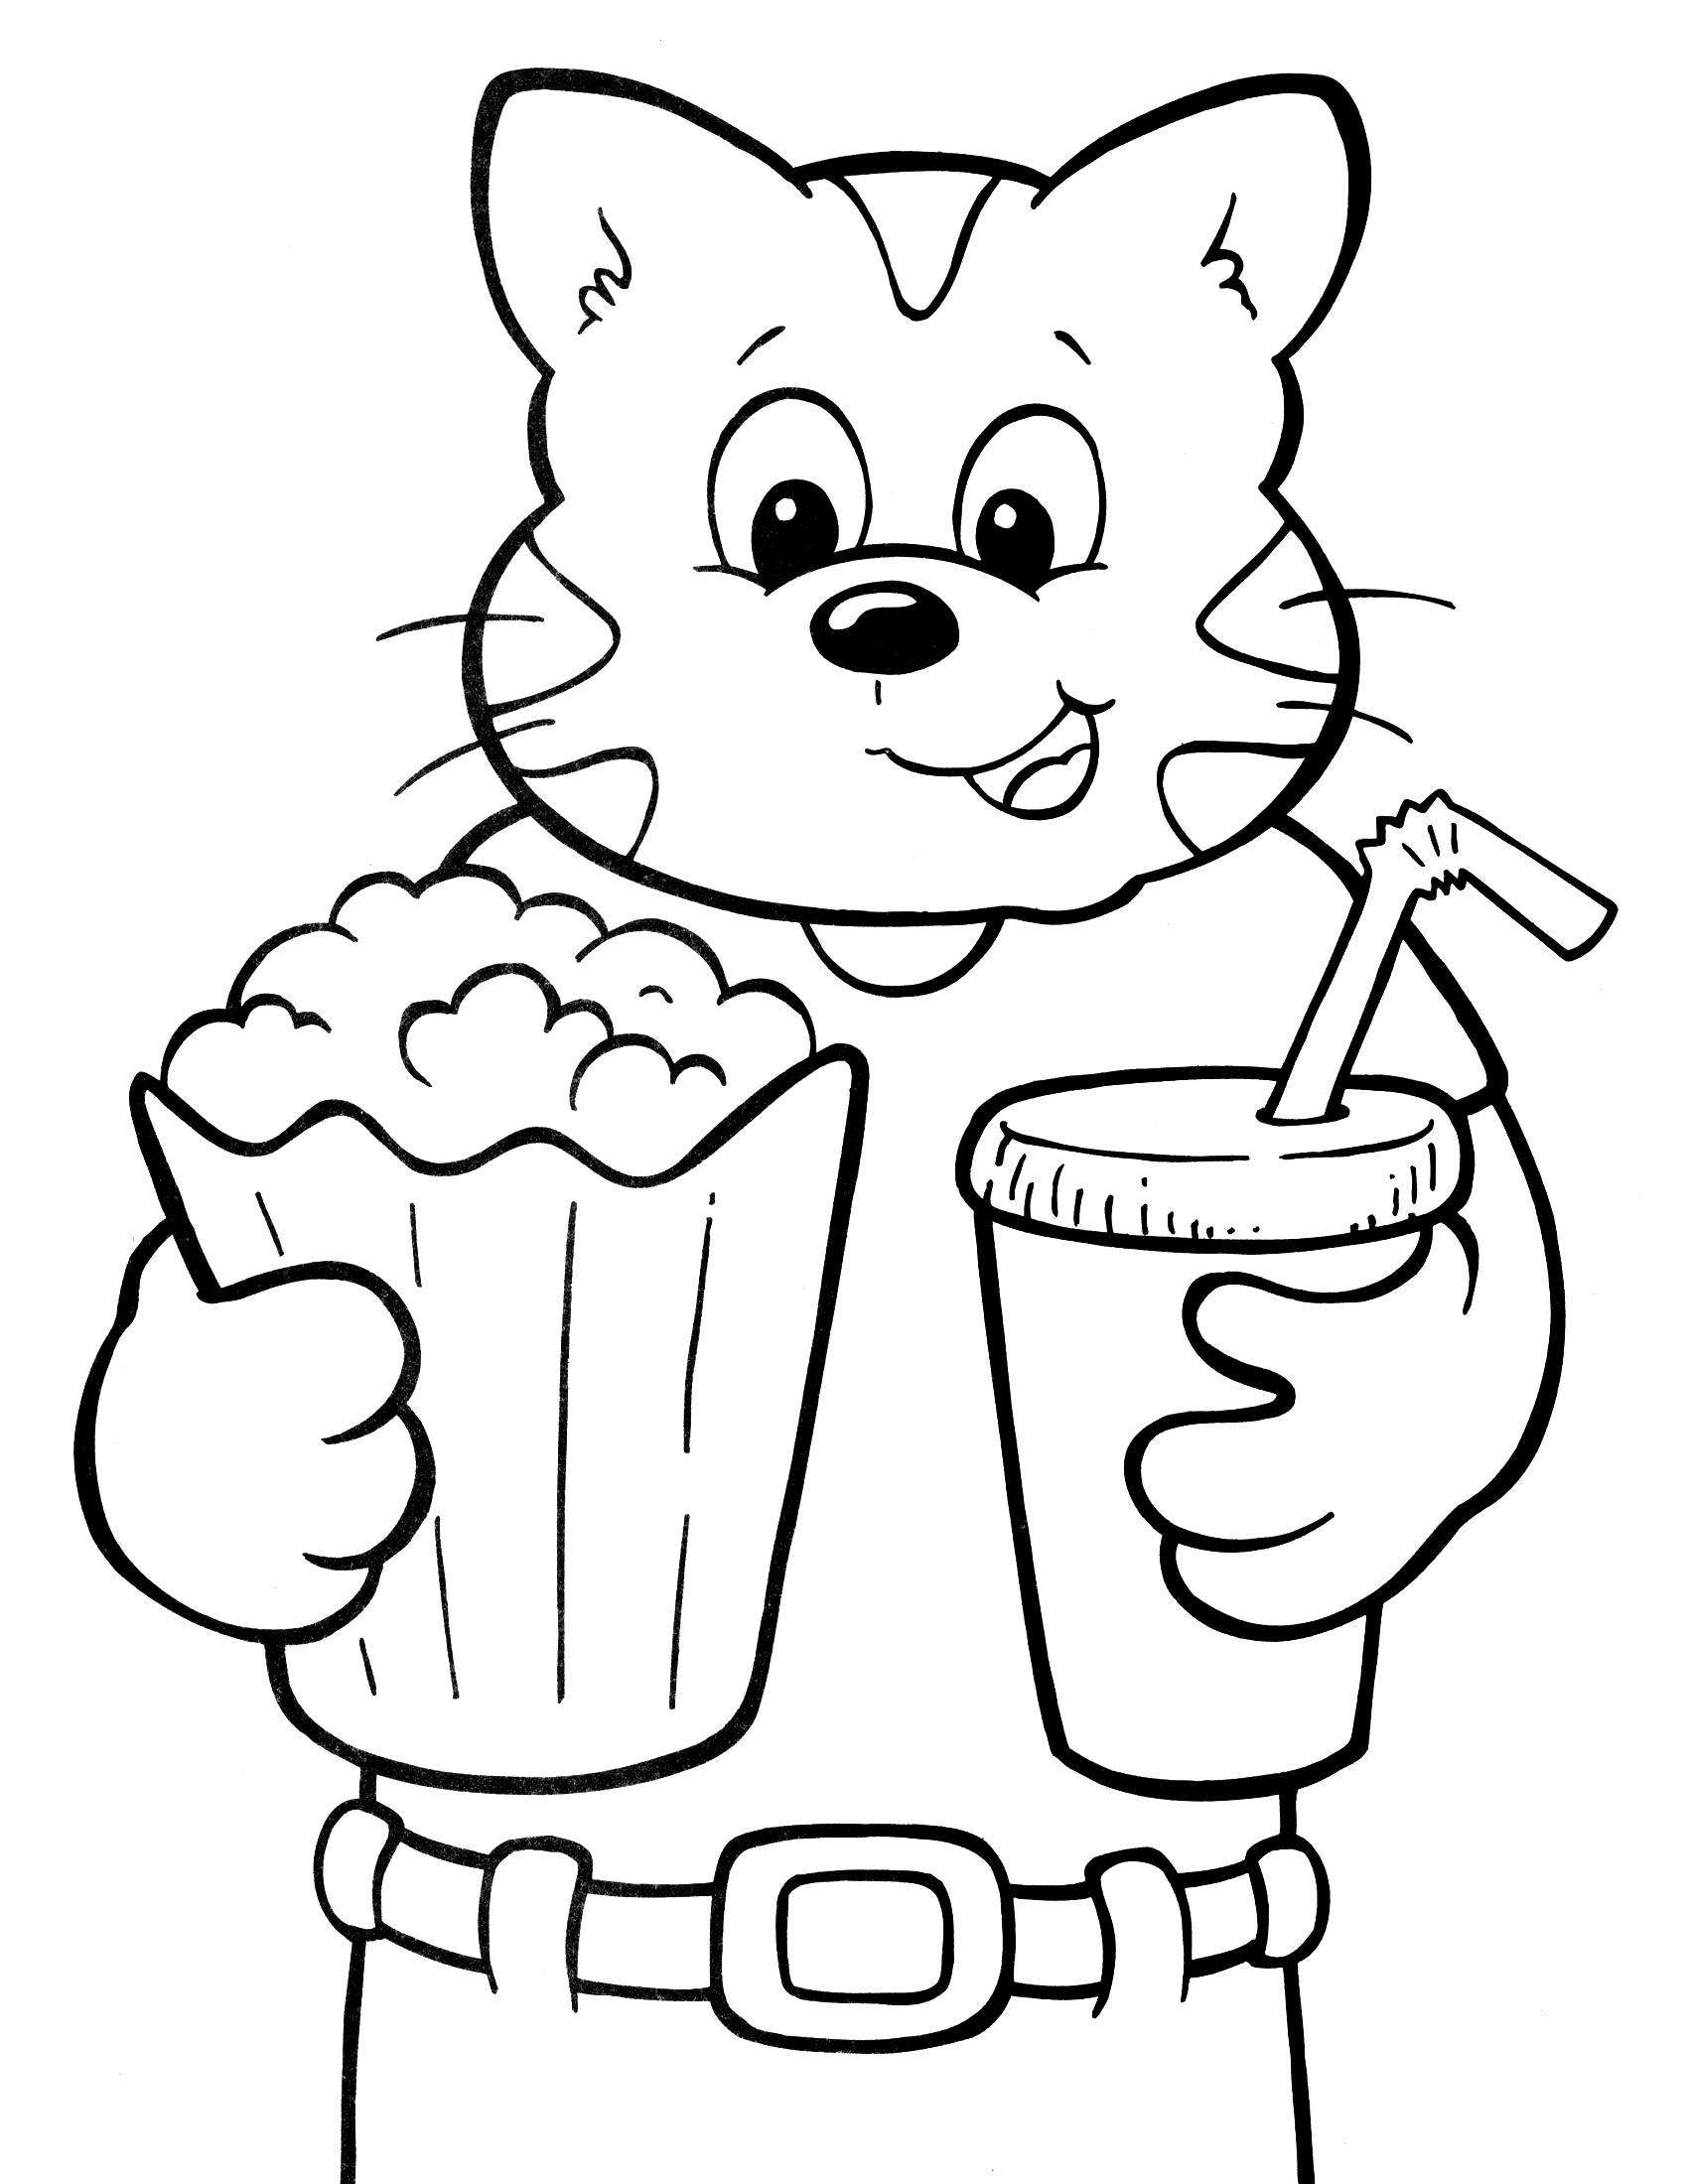 Free Crayola Coloring Pages Printable